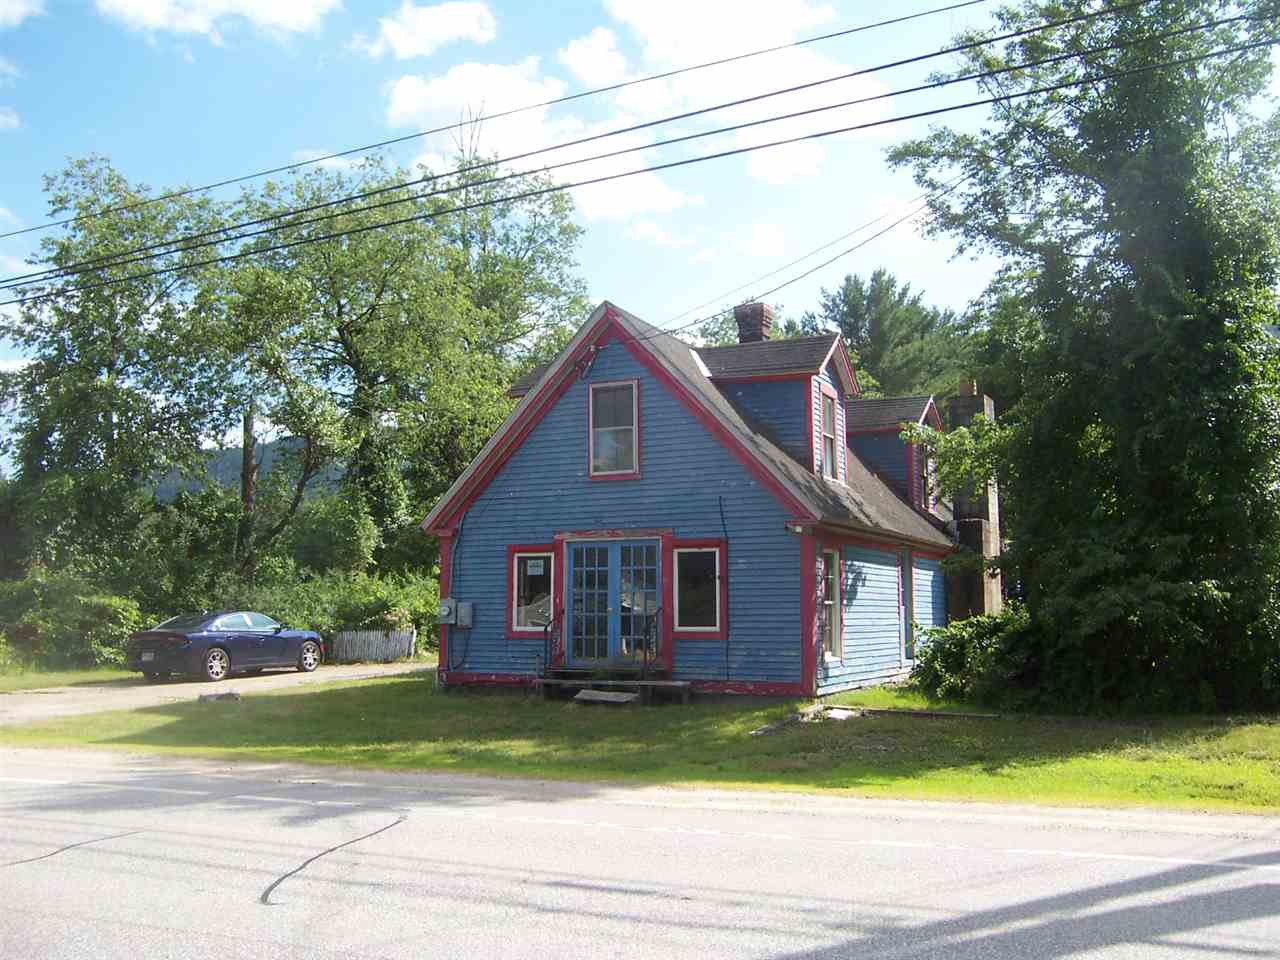 MLS 4764805: 239 Rumney Route 25, Rumney NH